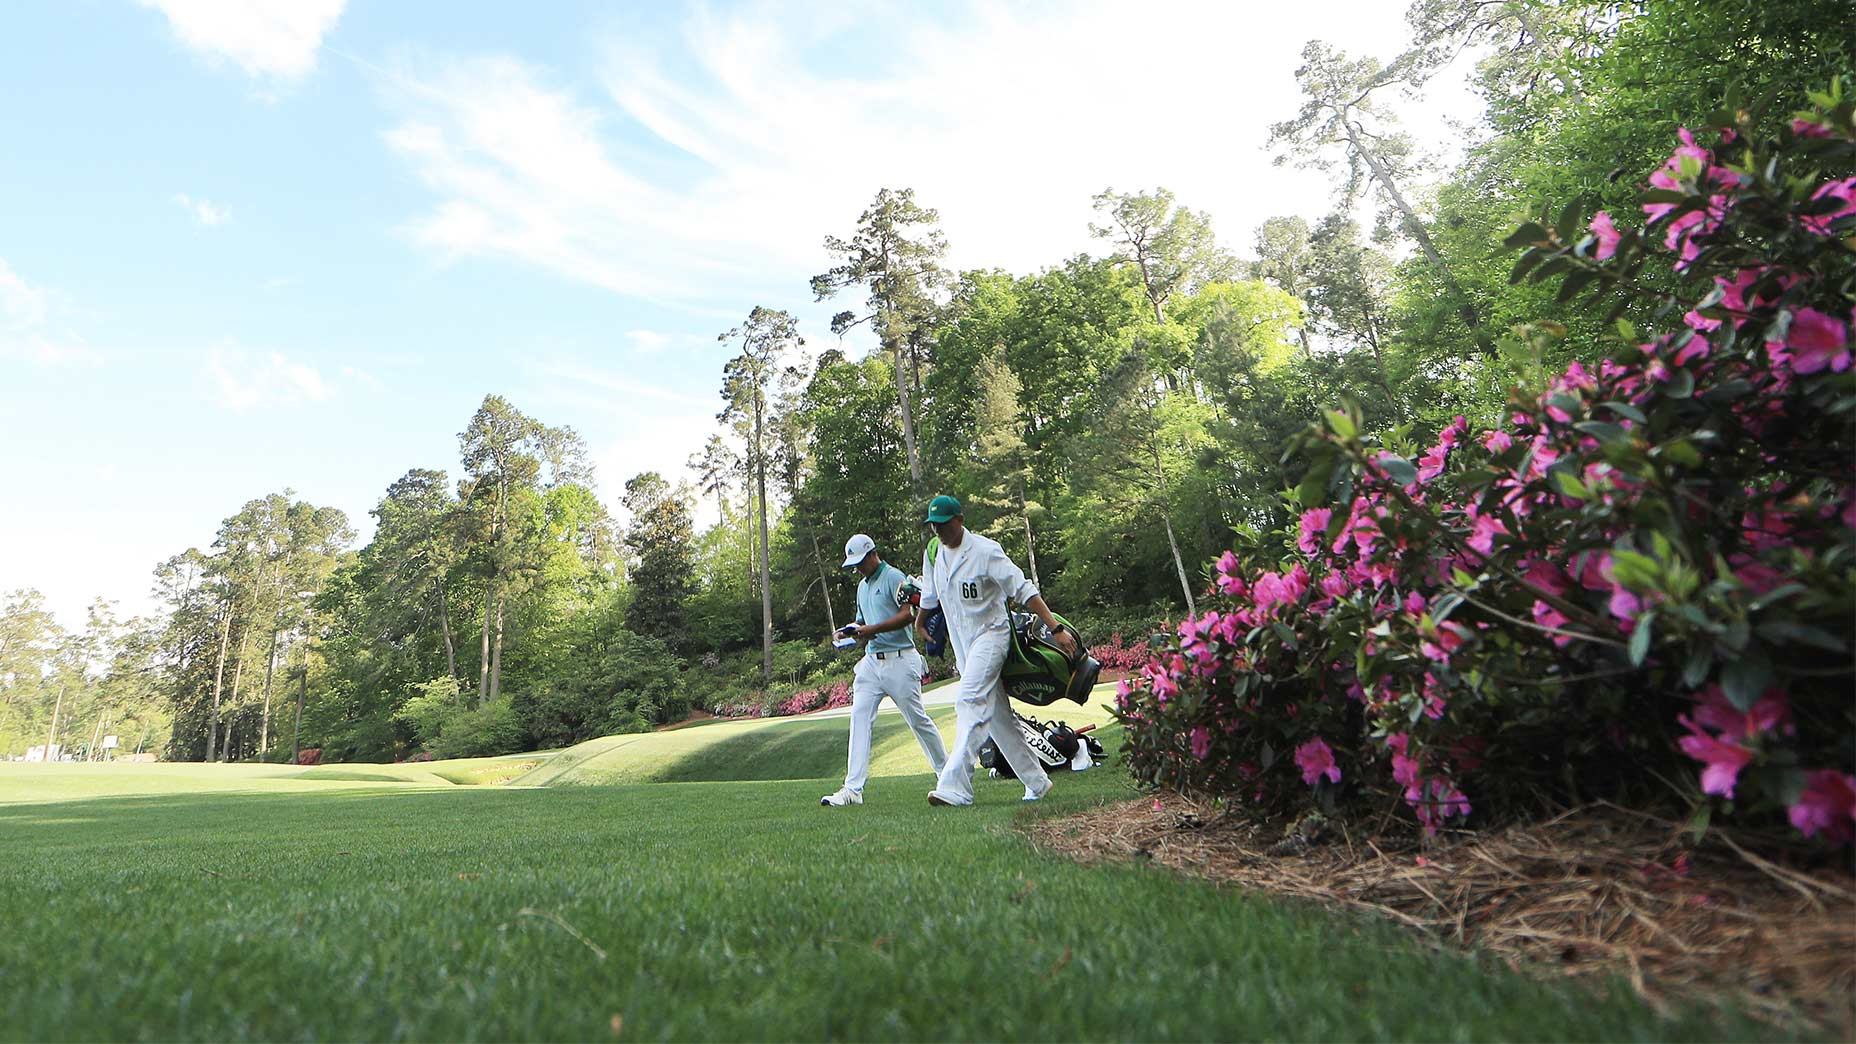 Xander Schauffele walks to the 13th fairway at Augusta National during the 2019 Masters.